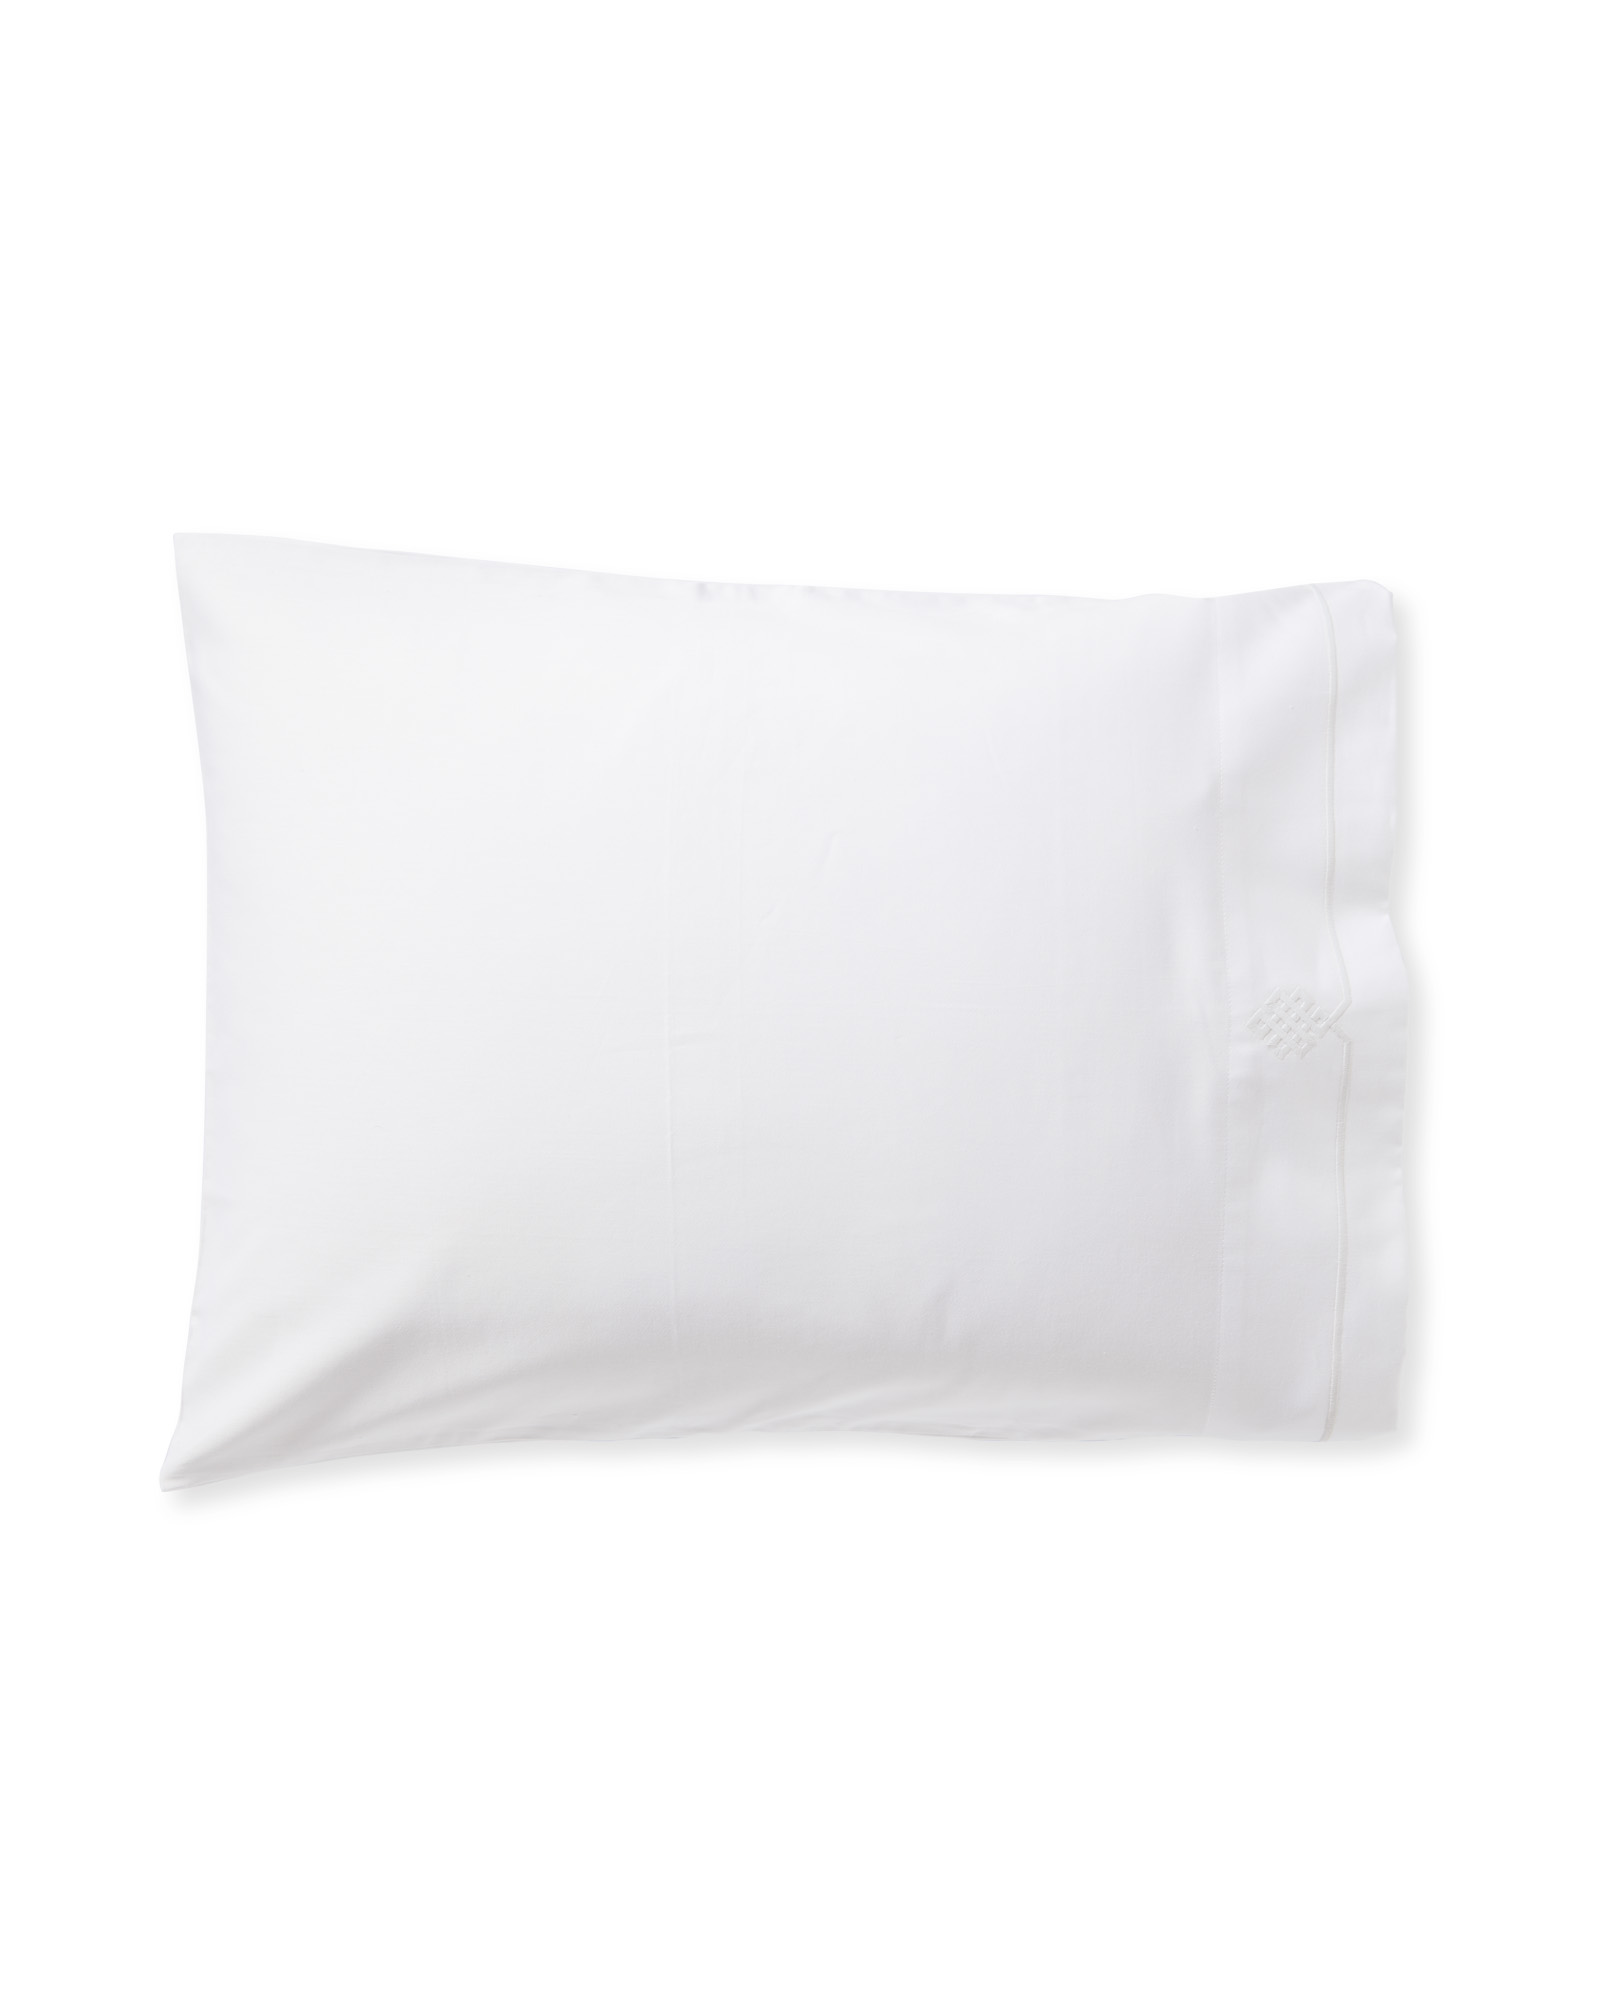 Soho Pillowcases (Extra Set of 2), White